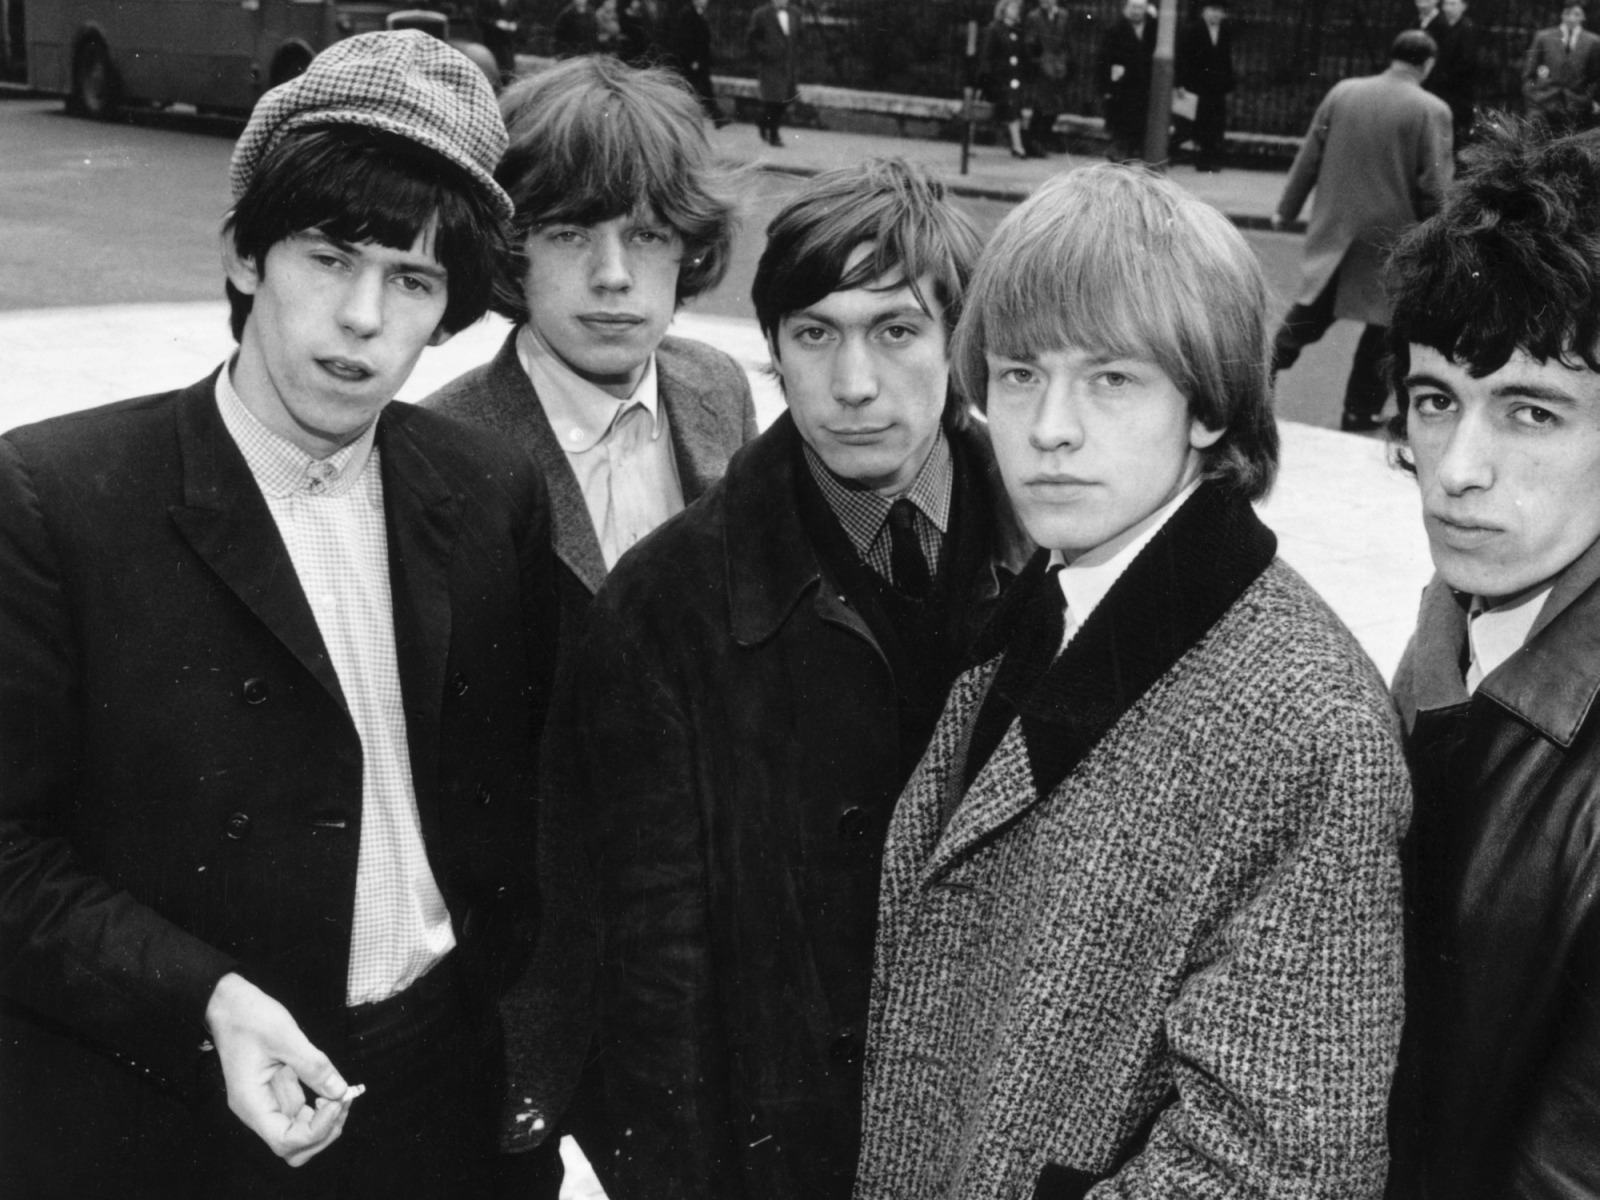 The Rolling Stones wallpaper ever The Rolling Stones wallpapers 1600x1200